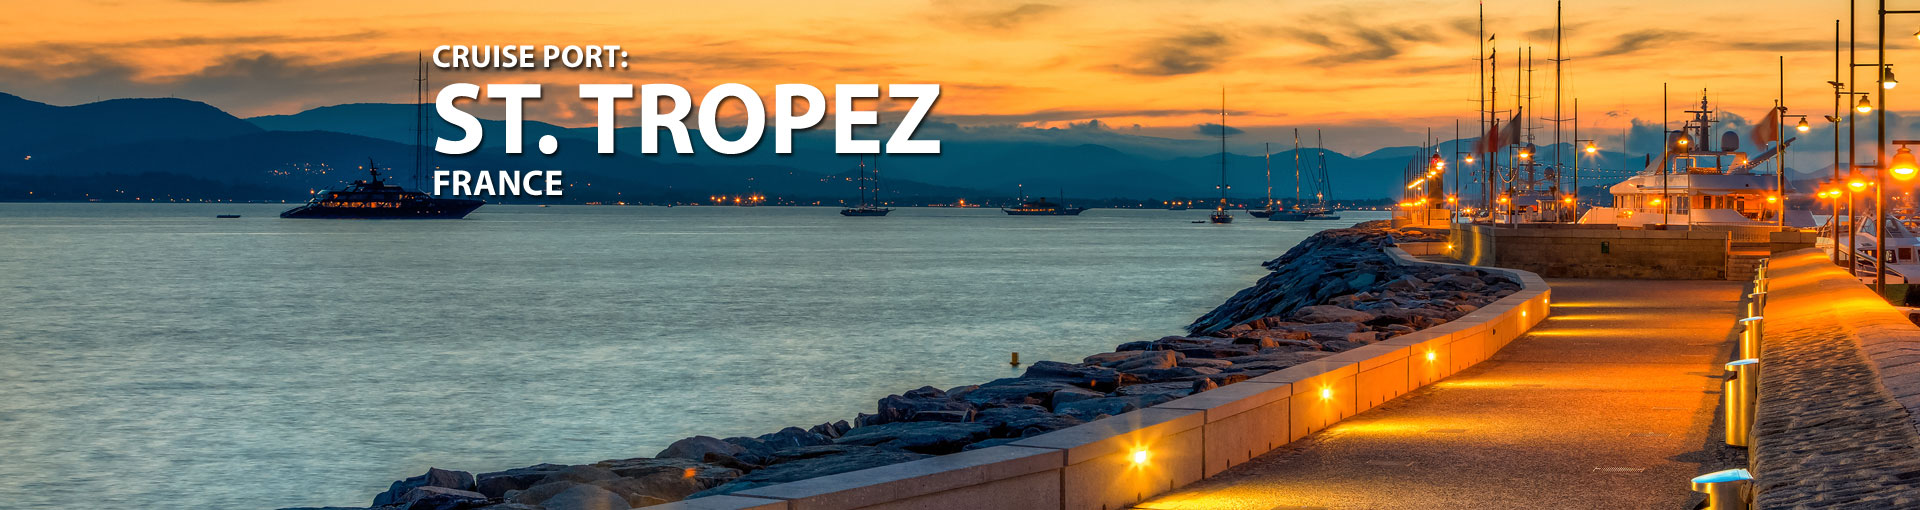 Cruises to St. Tropez, France